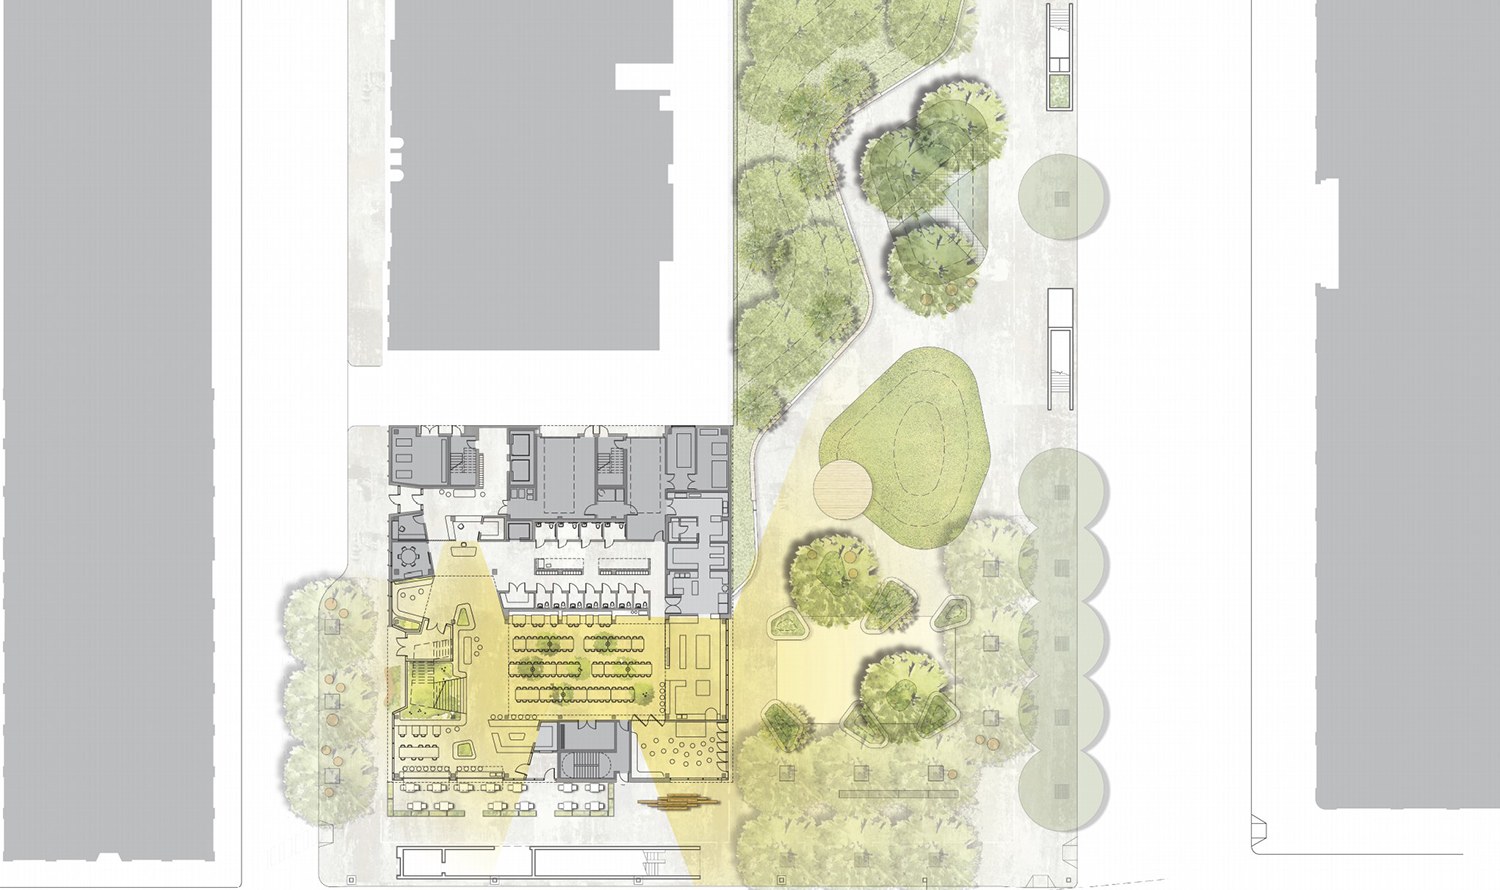 Site Plan for Inspiration Exchange. Drawing by MKB Architects